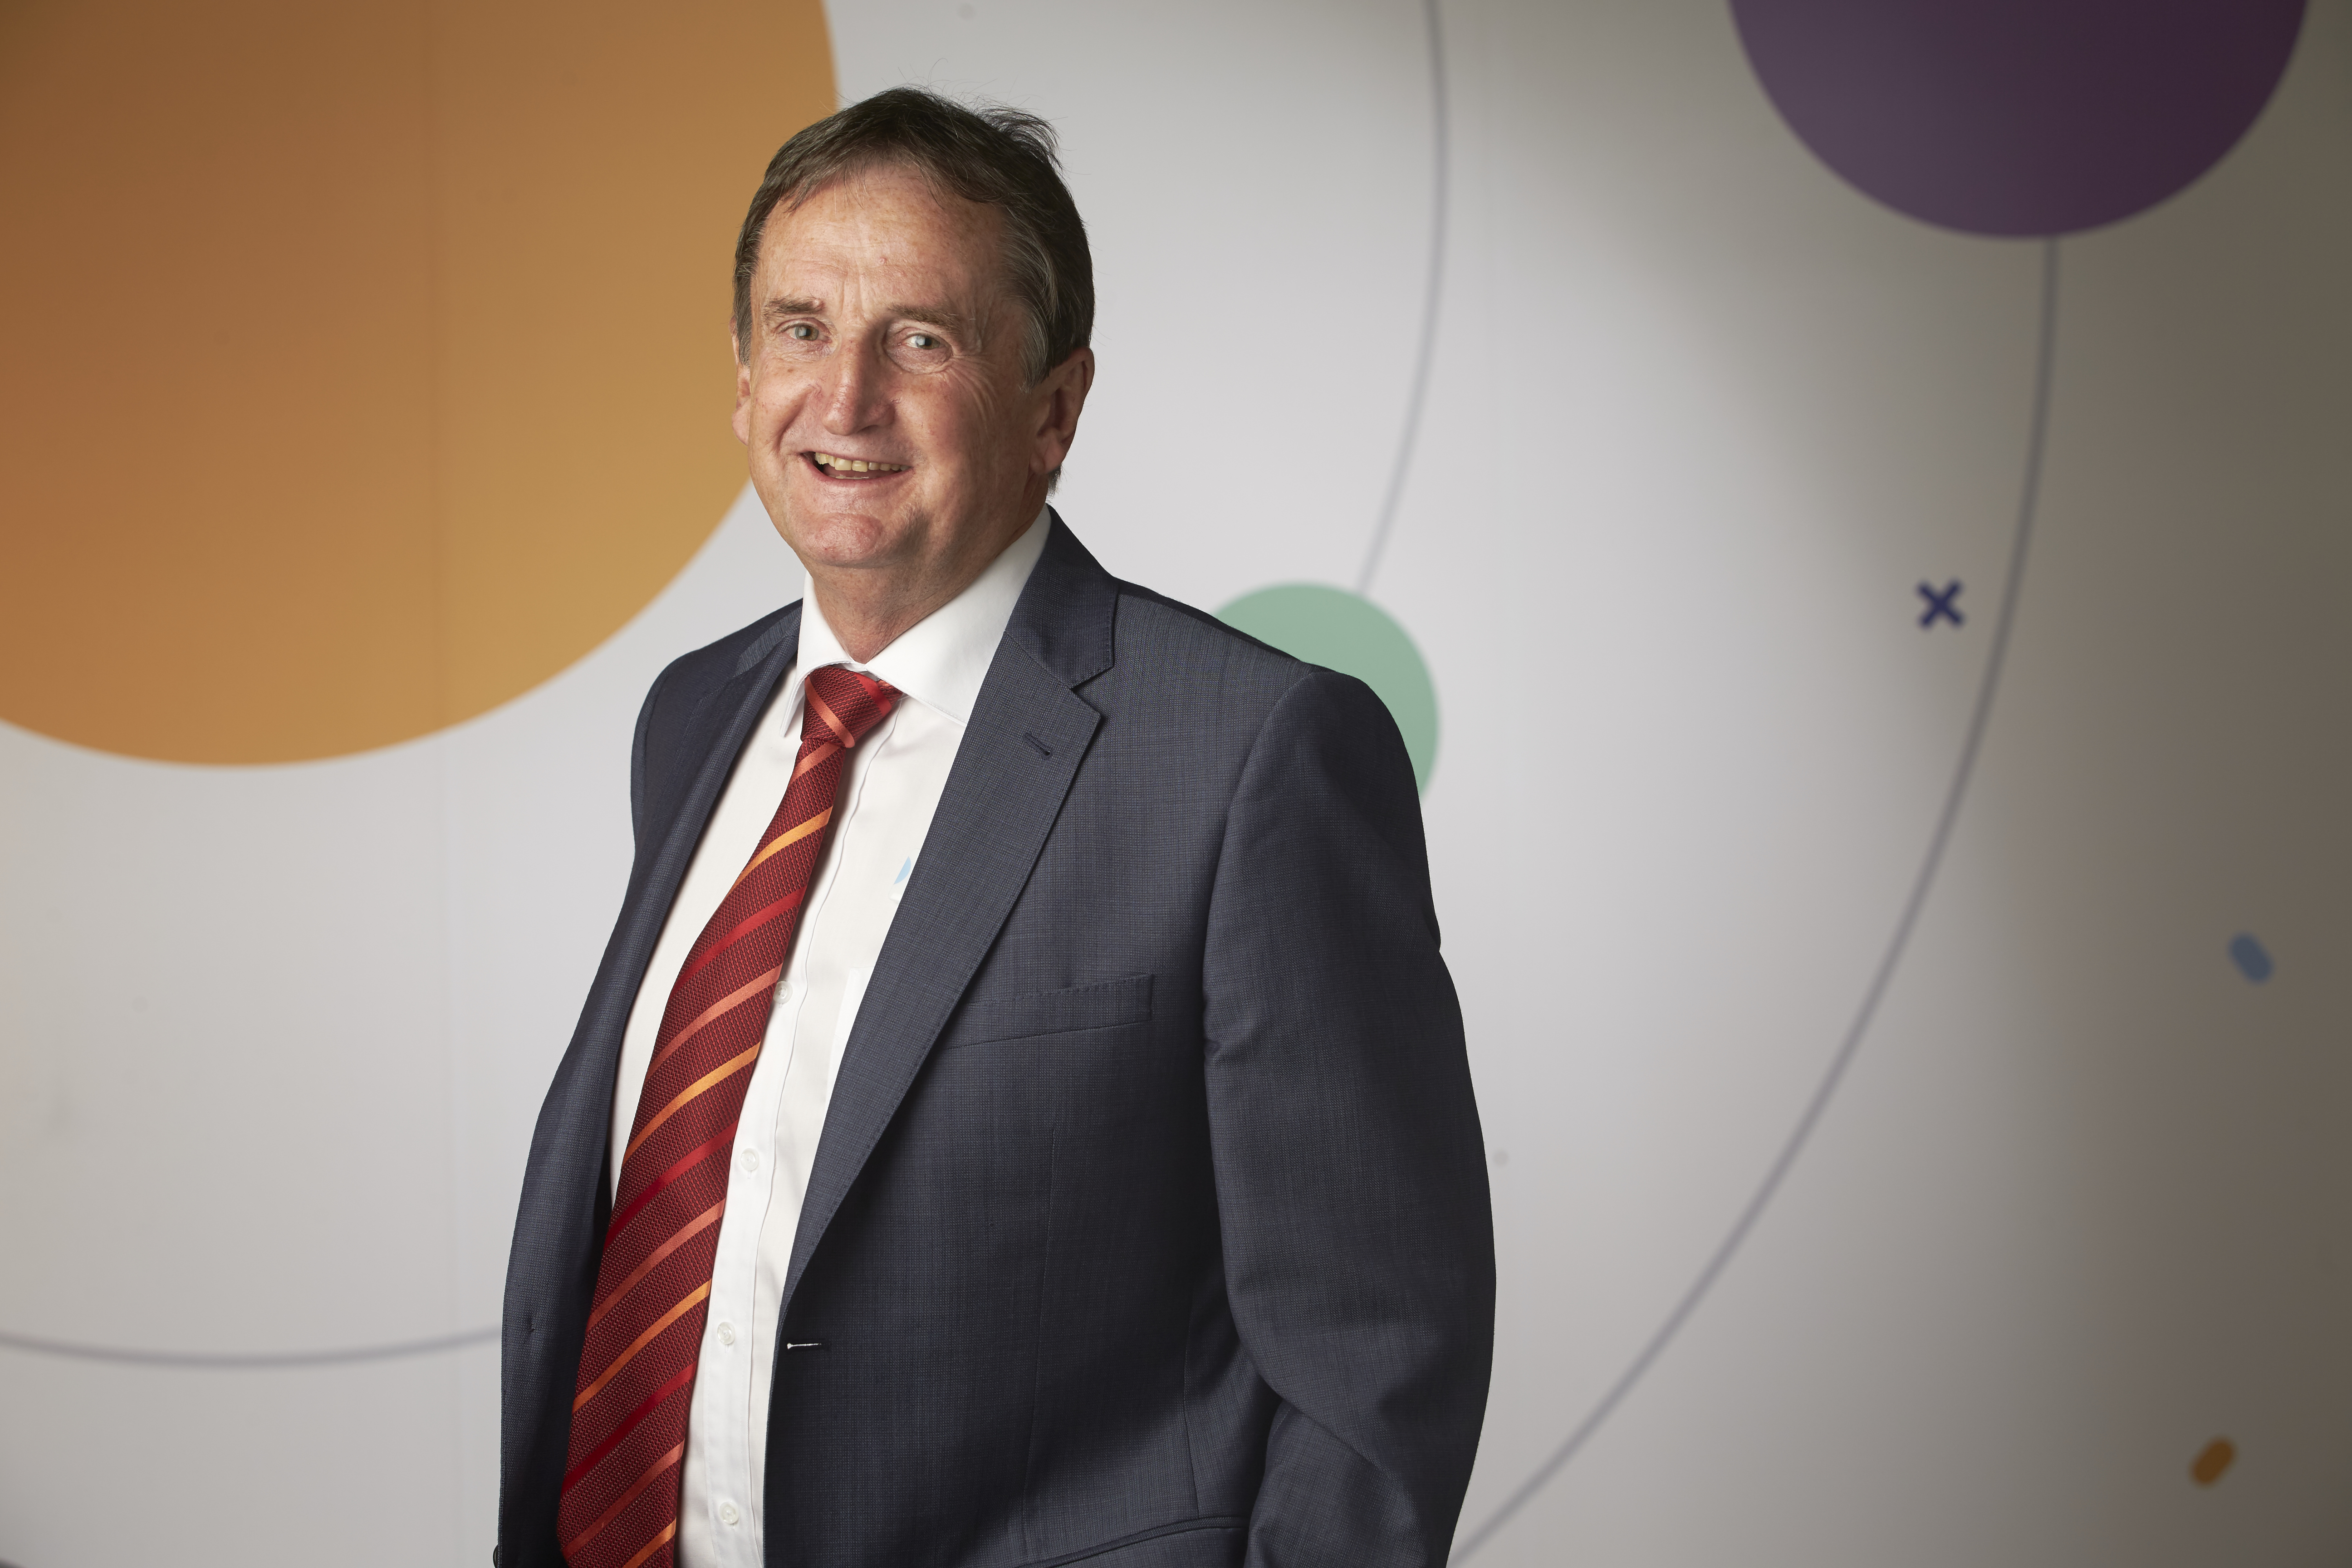 Scitech chief executive Alan Brien has announced he will retire after 17 years in the role